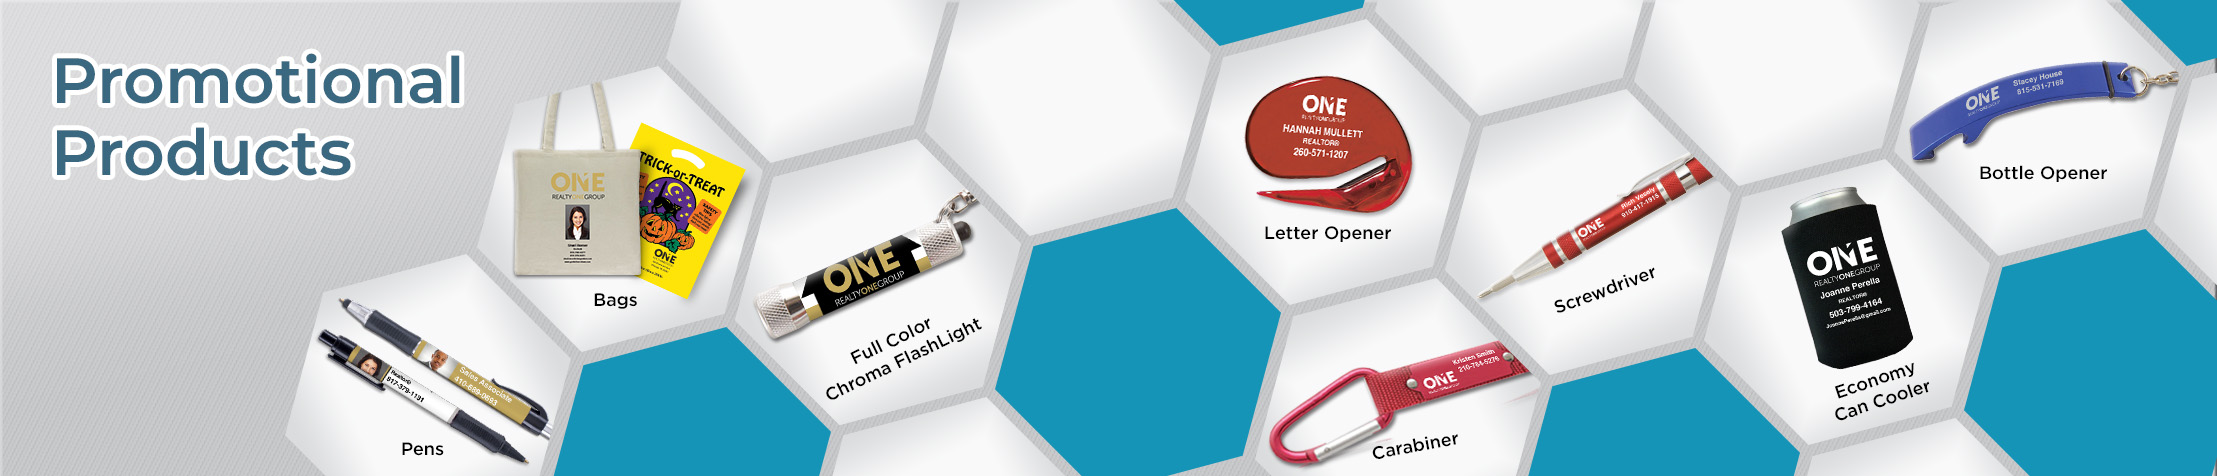 Realty One Group Real Estate Promotional Products - Realty One Group  personalized promotional pens, key chains, tote bags, flashlights, mugs | BestPrintBuy.com